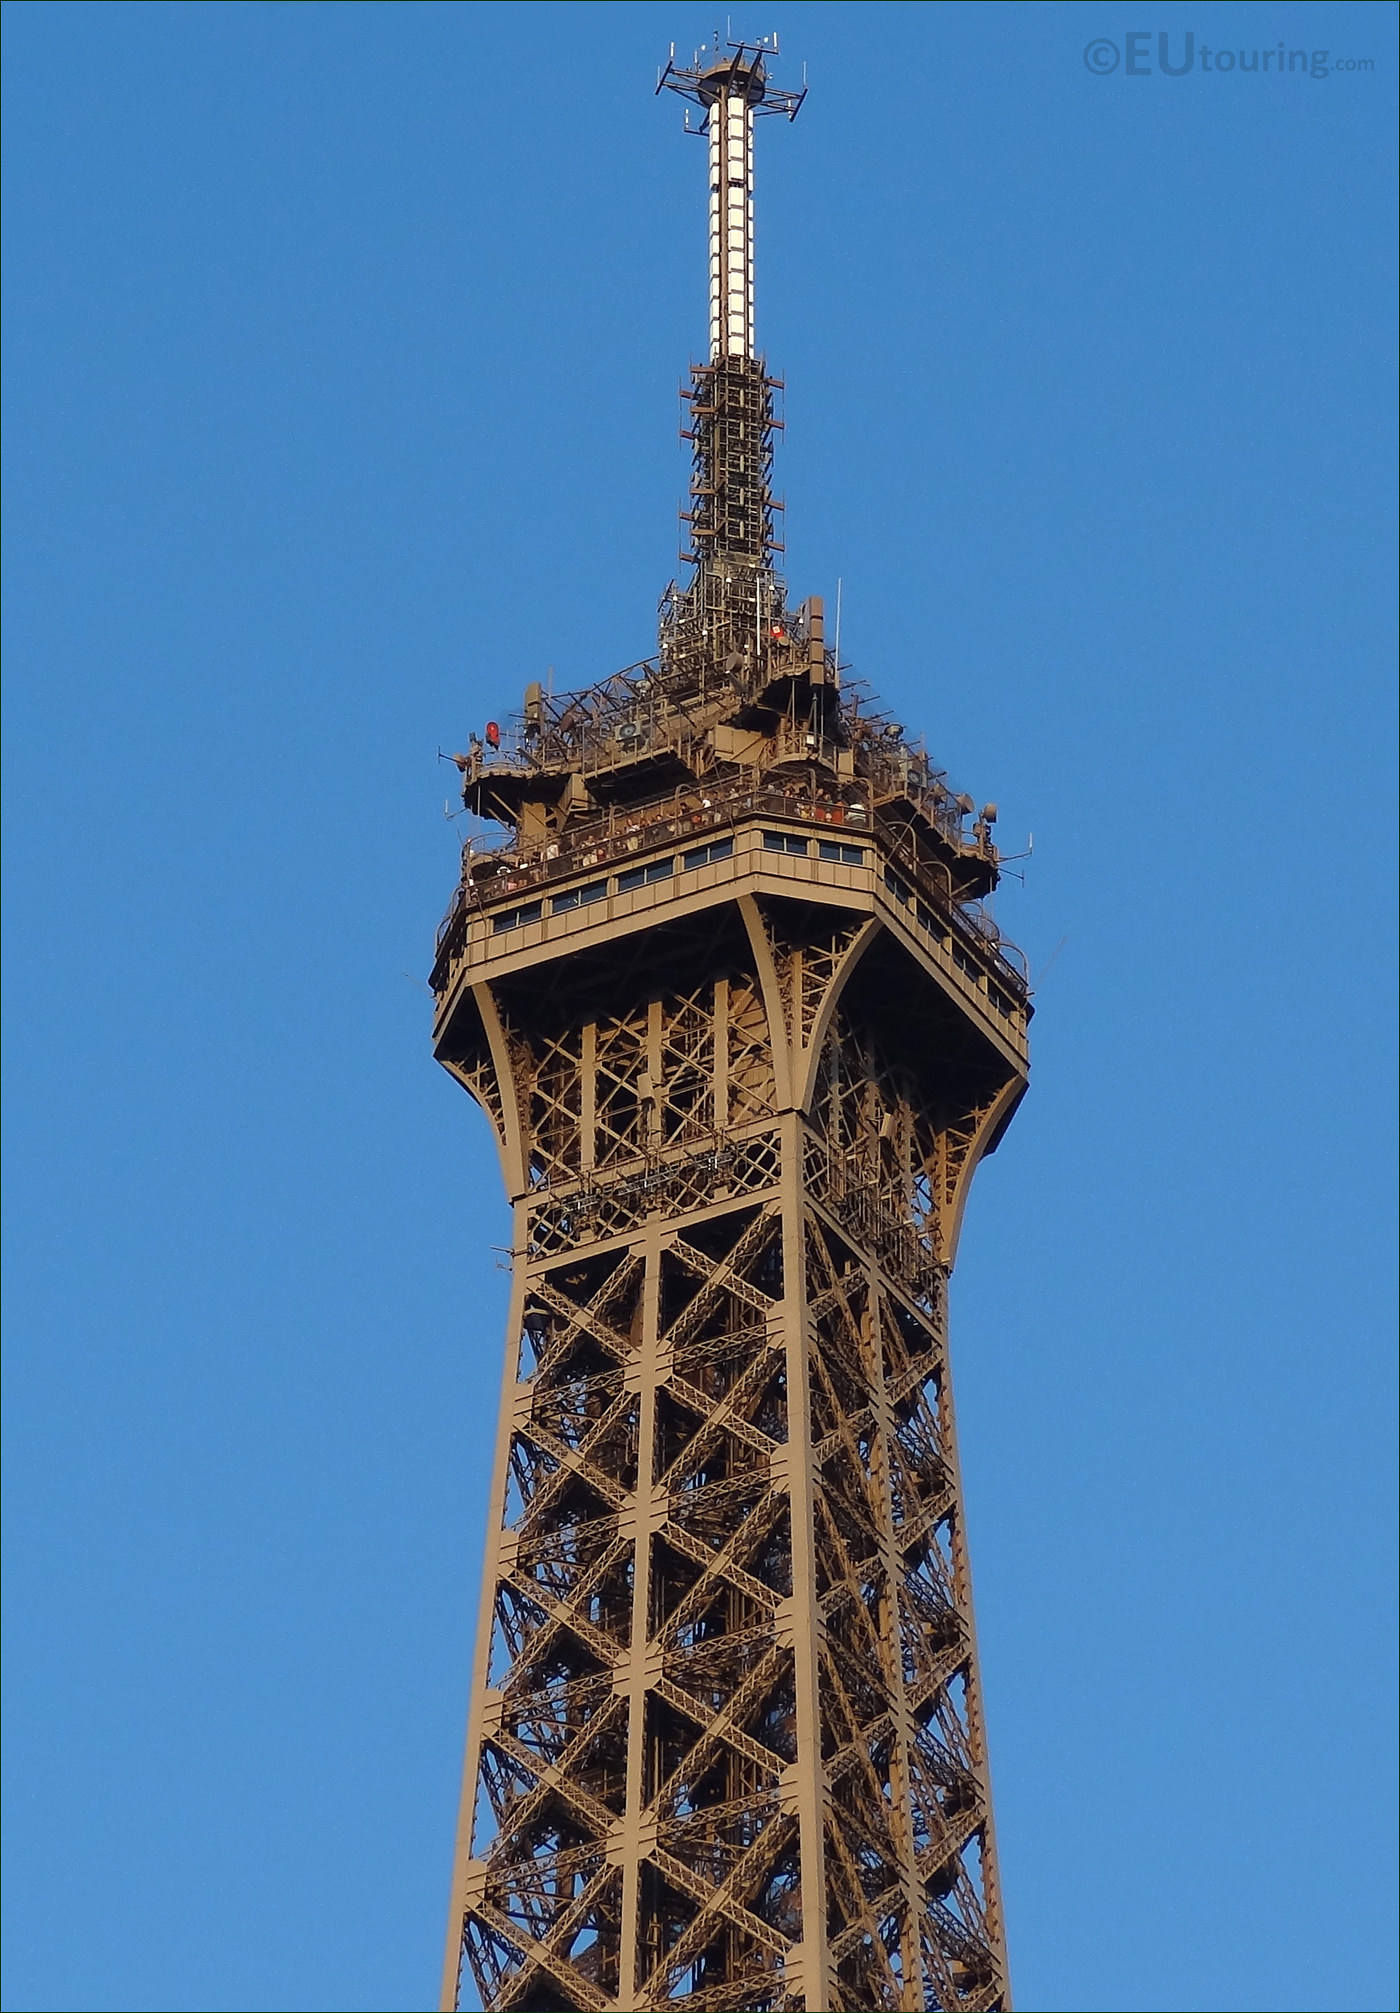 Hd Photo Of The Eiffel Tower Top Section And Viewing Platform Page 12